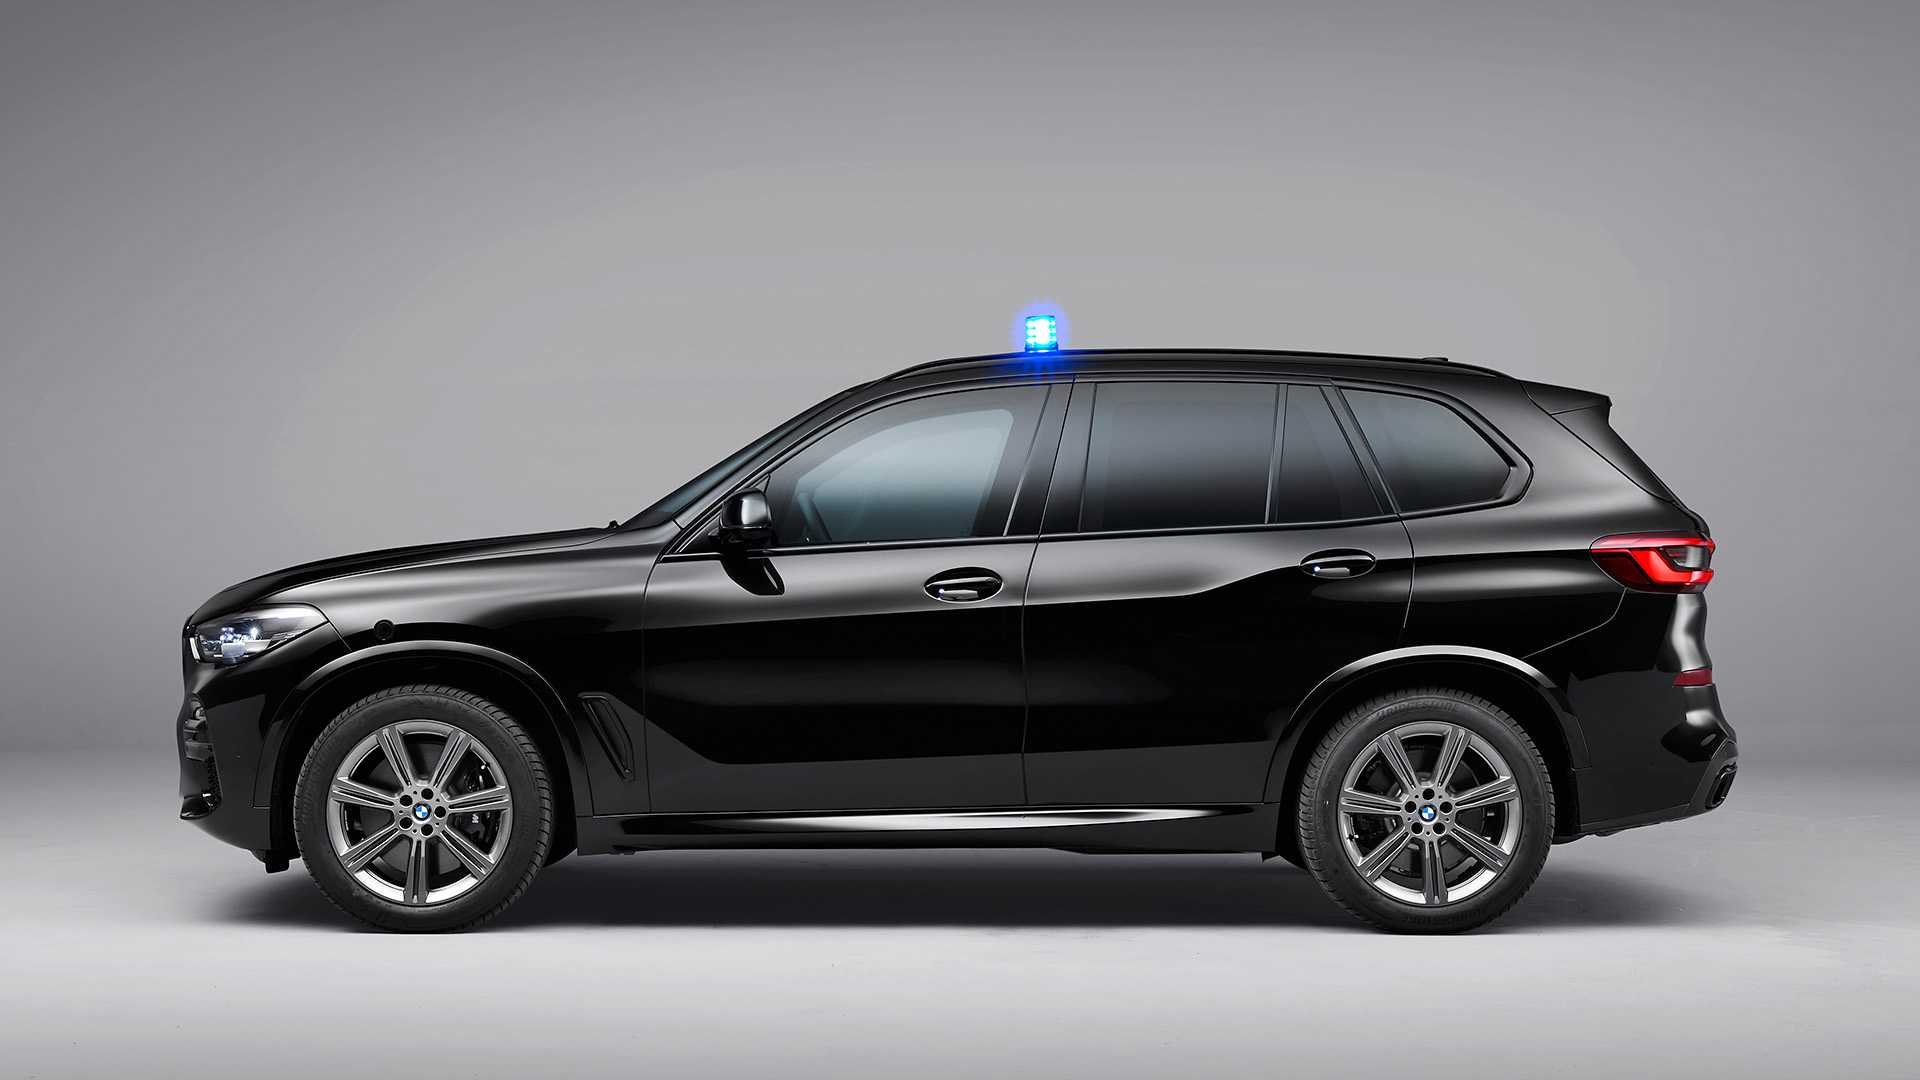 2020 BMW X5 Protection VR6 (Armored Vehicle) Side Wallpapers (10)